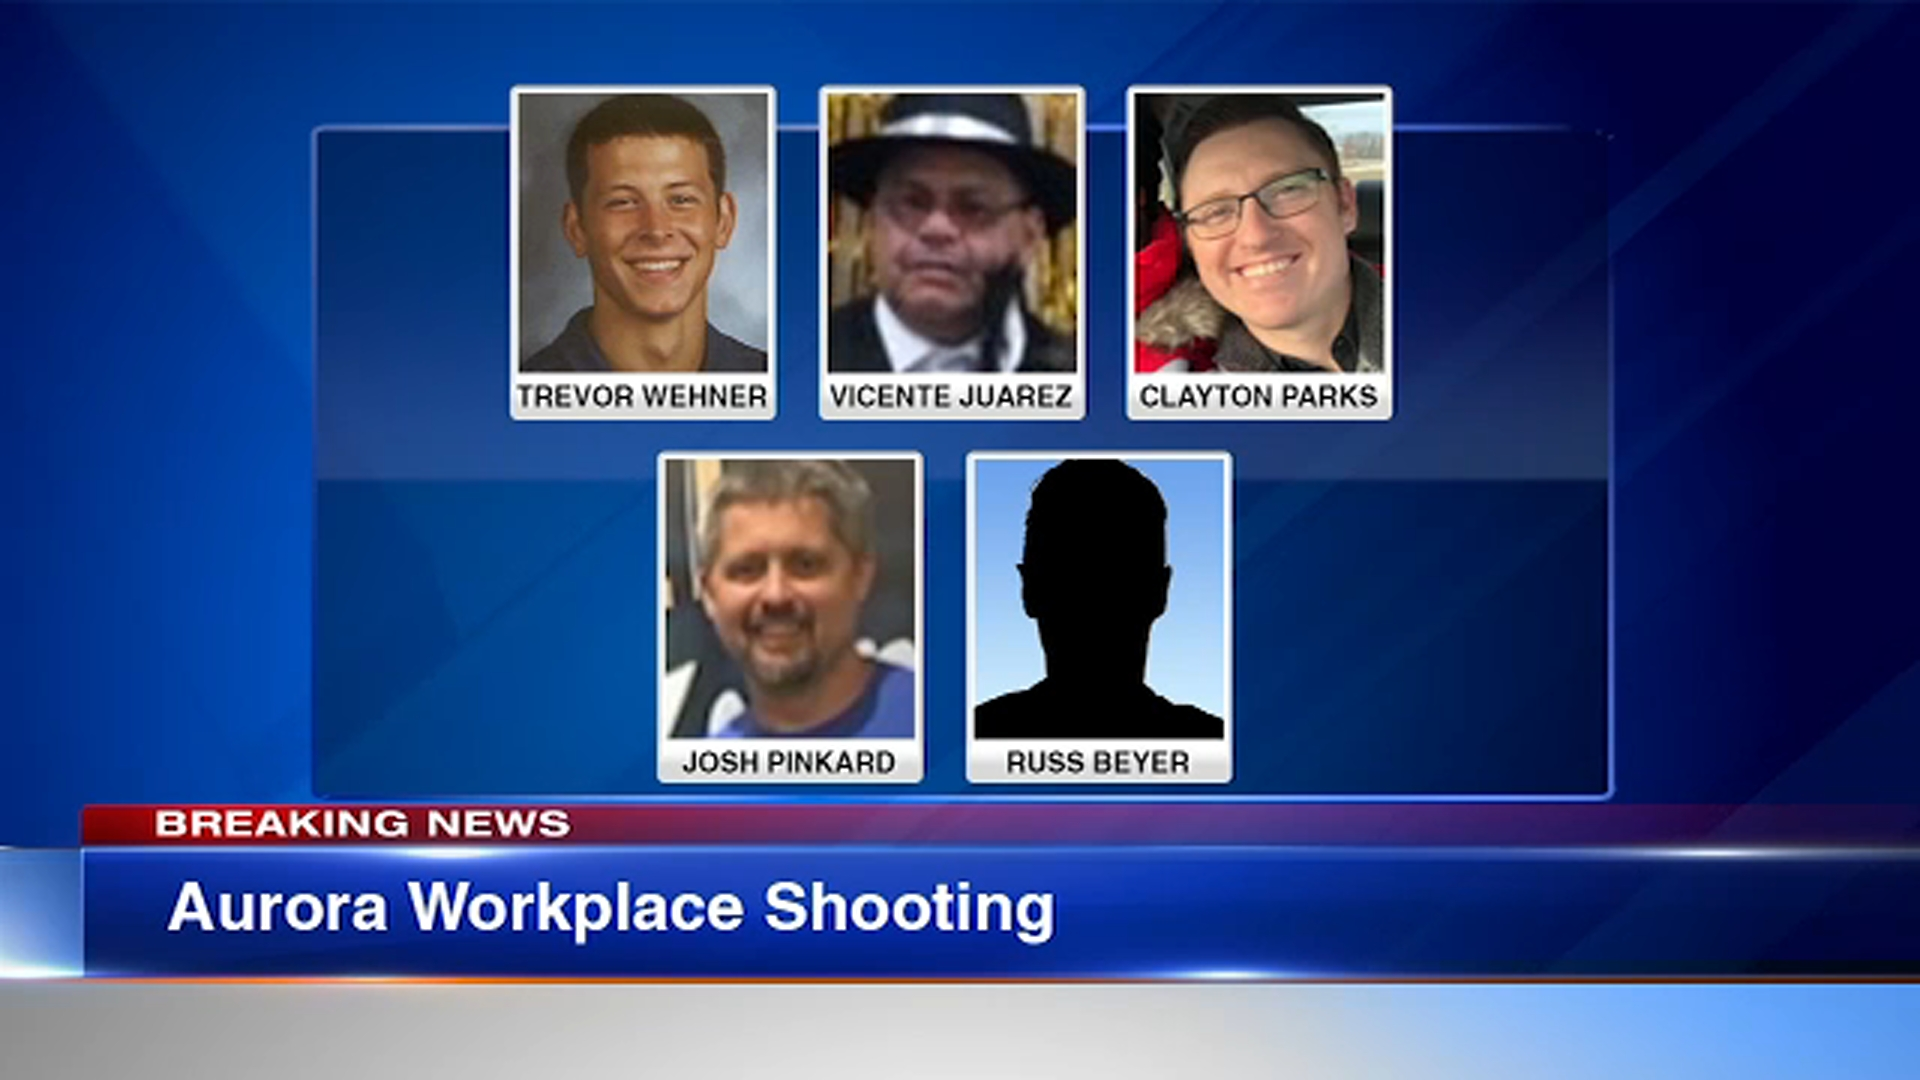 Clayton Parks of Elgin, Trevor Wehner of DeKalb, Russell Beyer of Yorkville, Vincente Juarez of Oswego and Josh Pinkard of Oswego, were killed in a shooting at Henry Pratt Co. in A